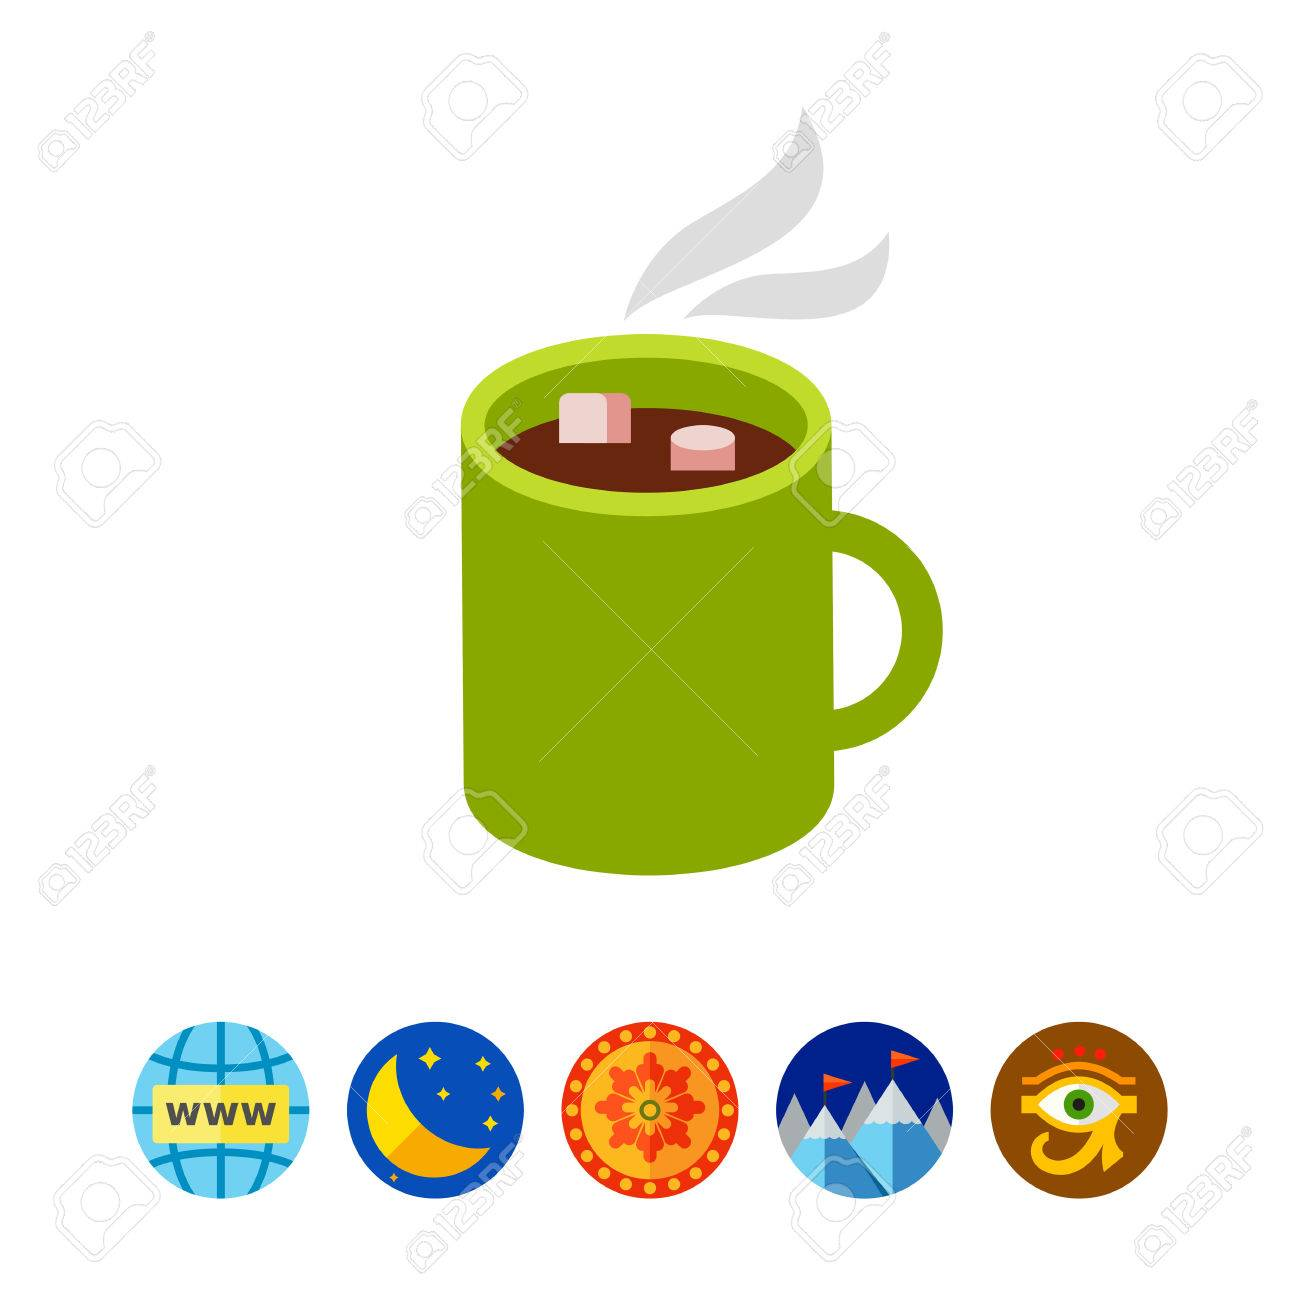 hot chocolate mug clipart. hot chocolate in mug. dessert, sweet, beverage. concept. can be mug clipart